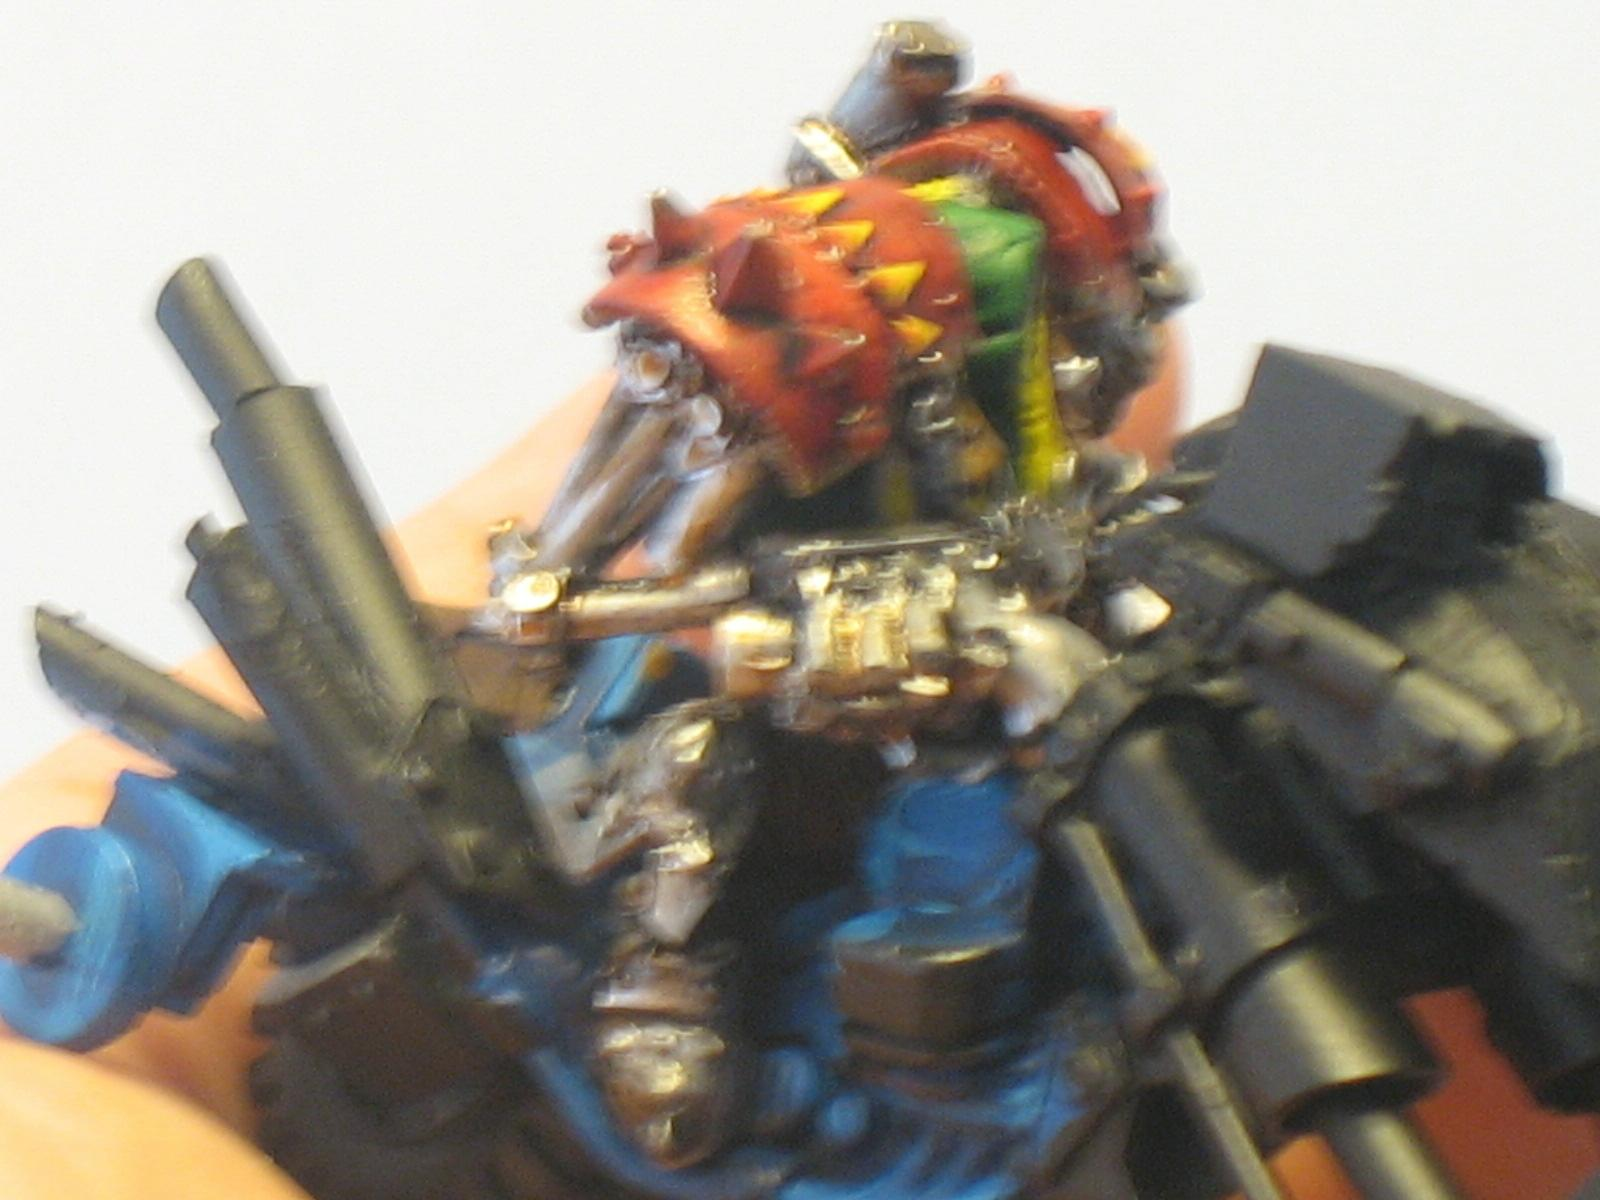 Bike, Orks, Warboss, Warhammer 40,000